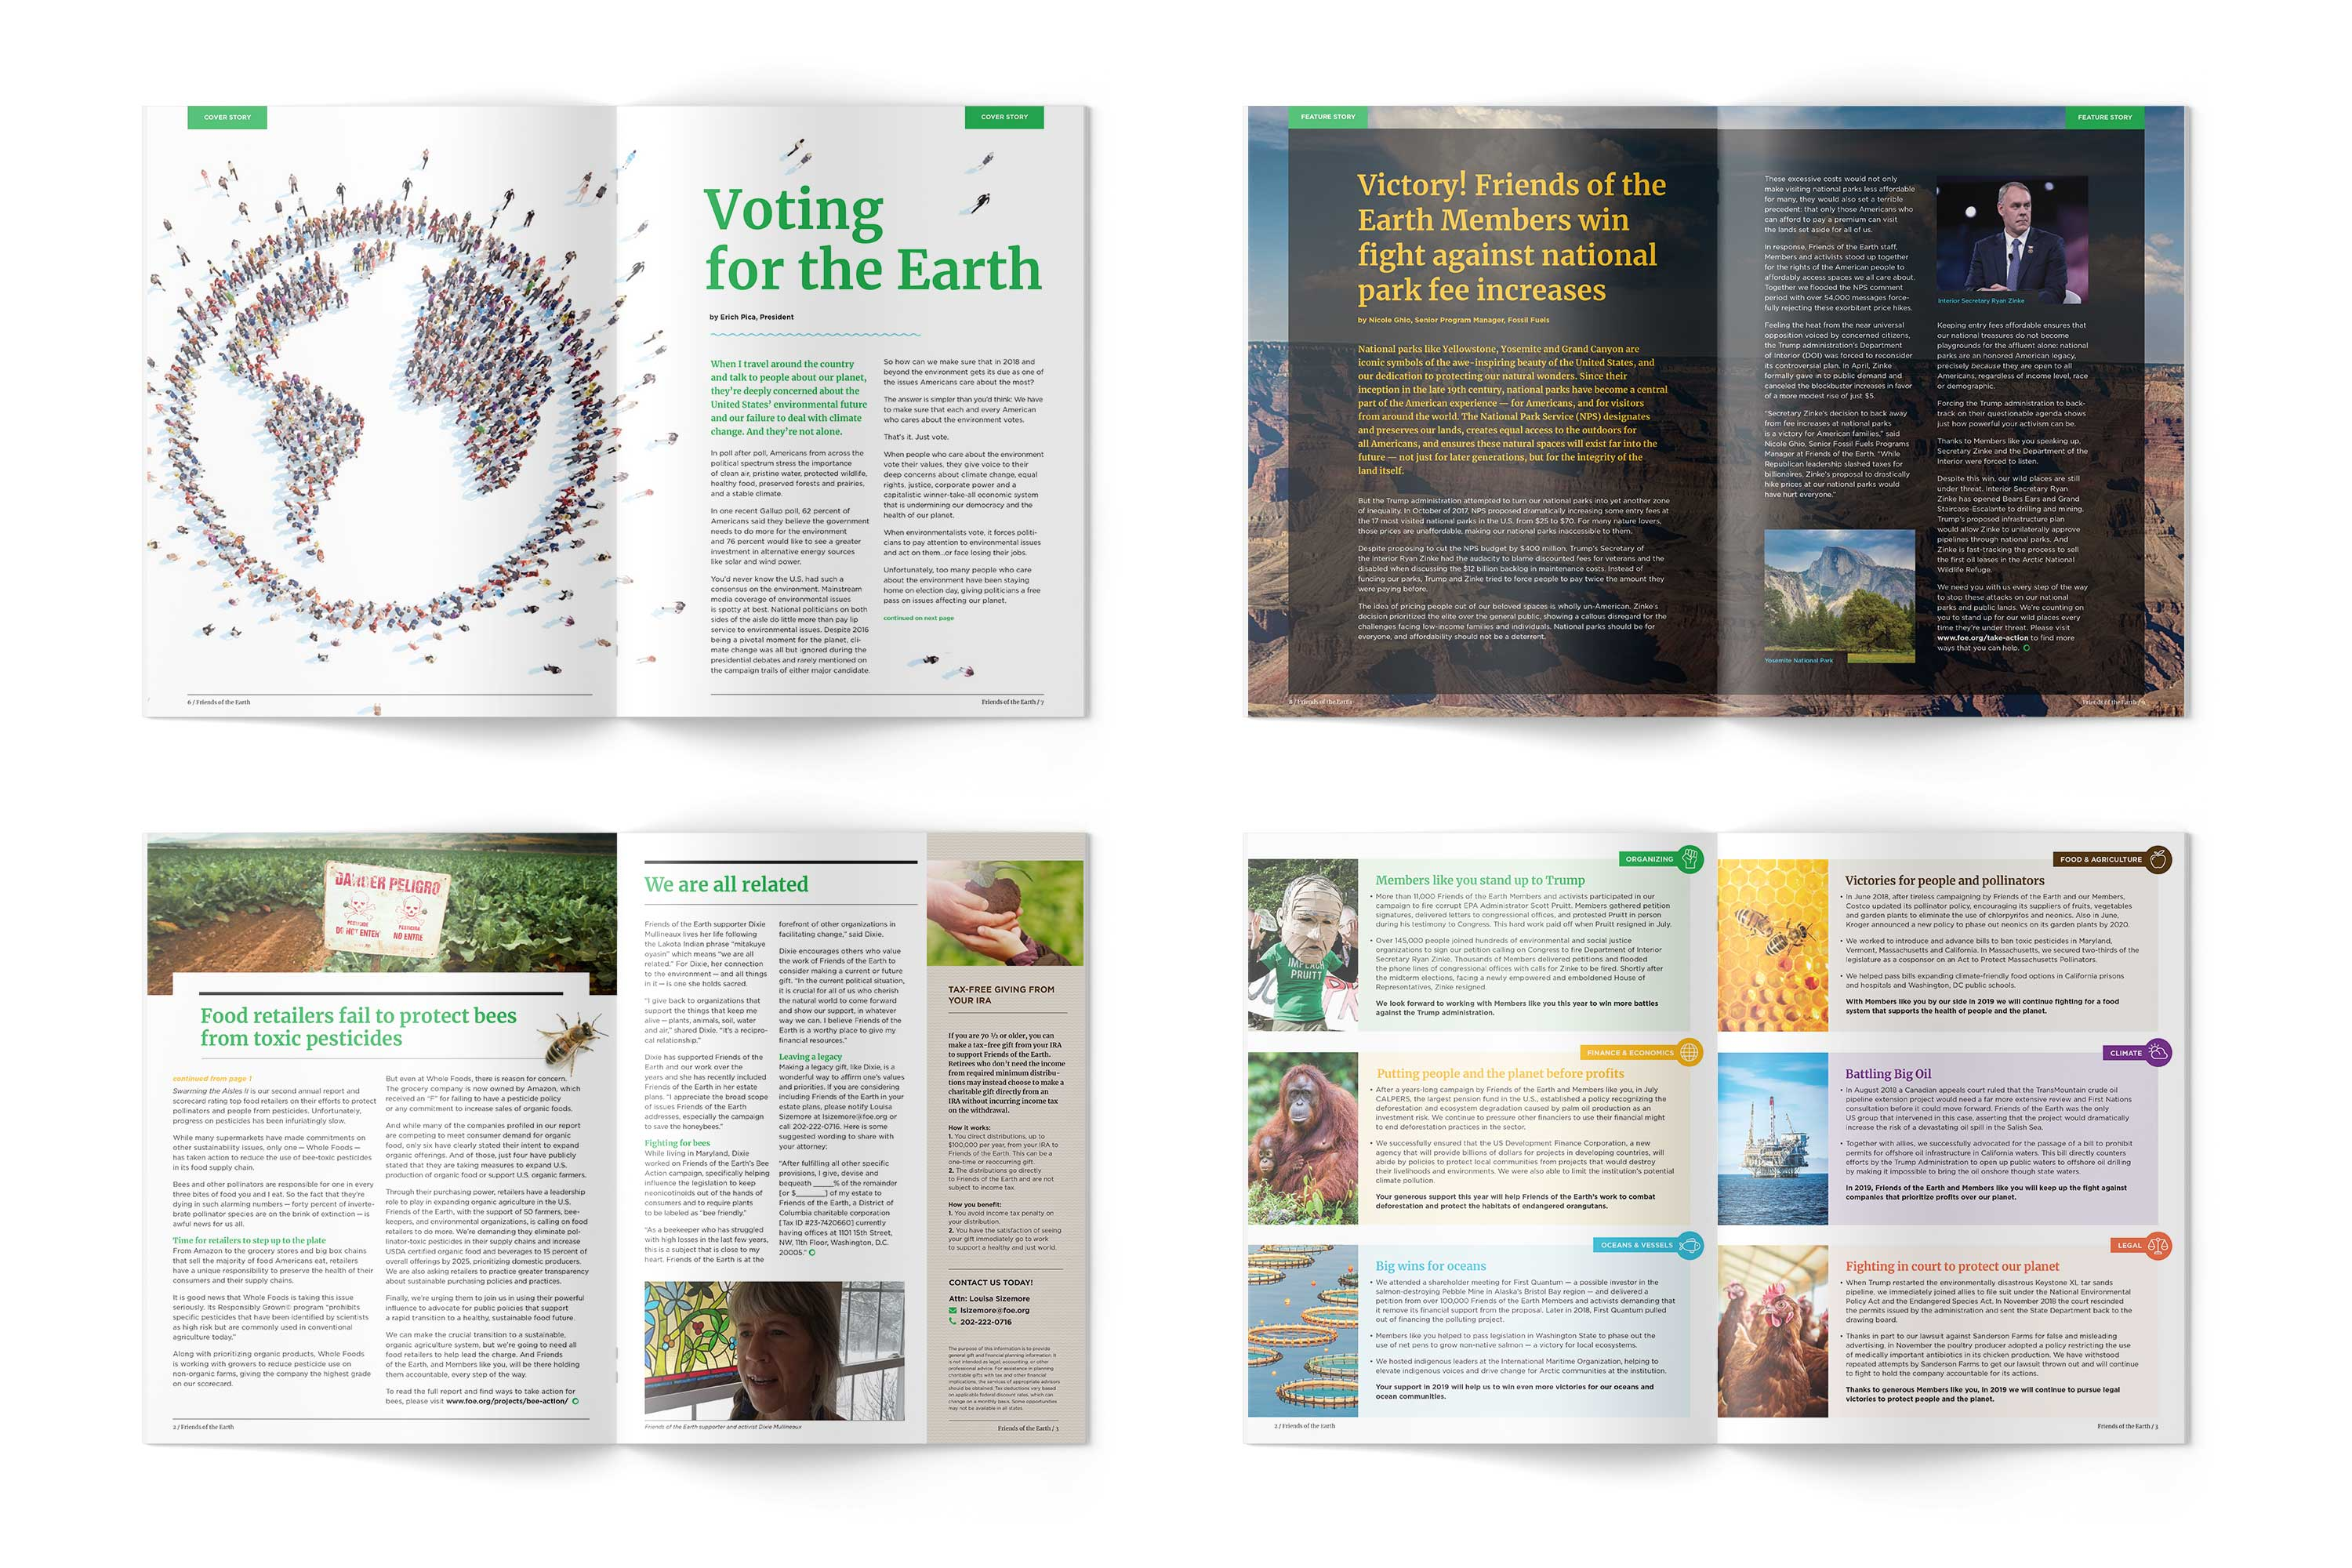 Friends of the Earth magazine newsletter interior spreads